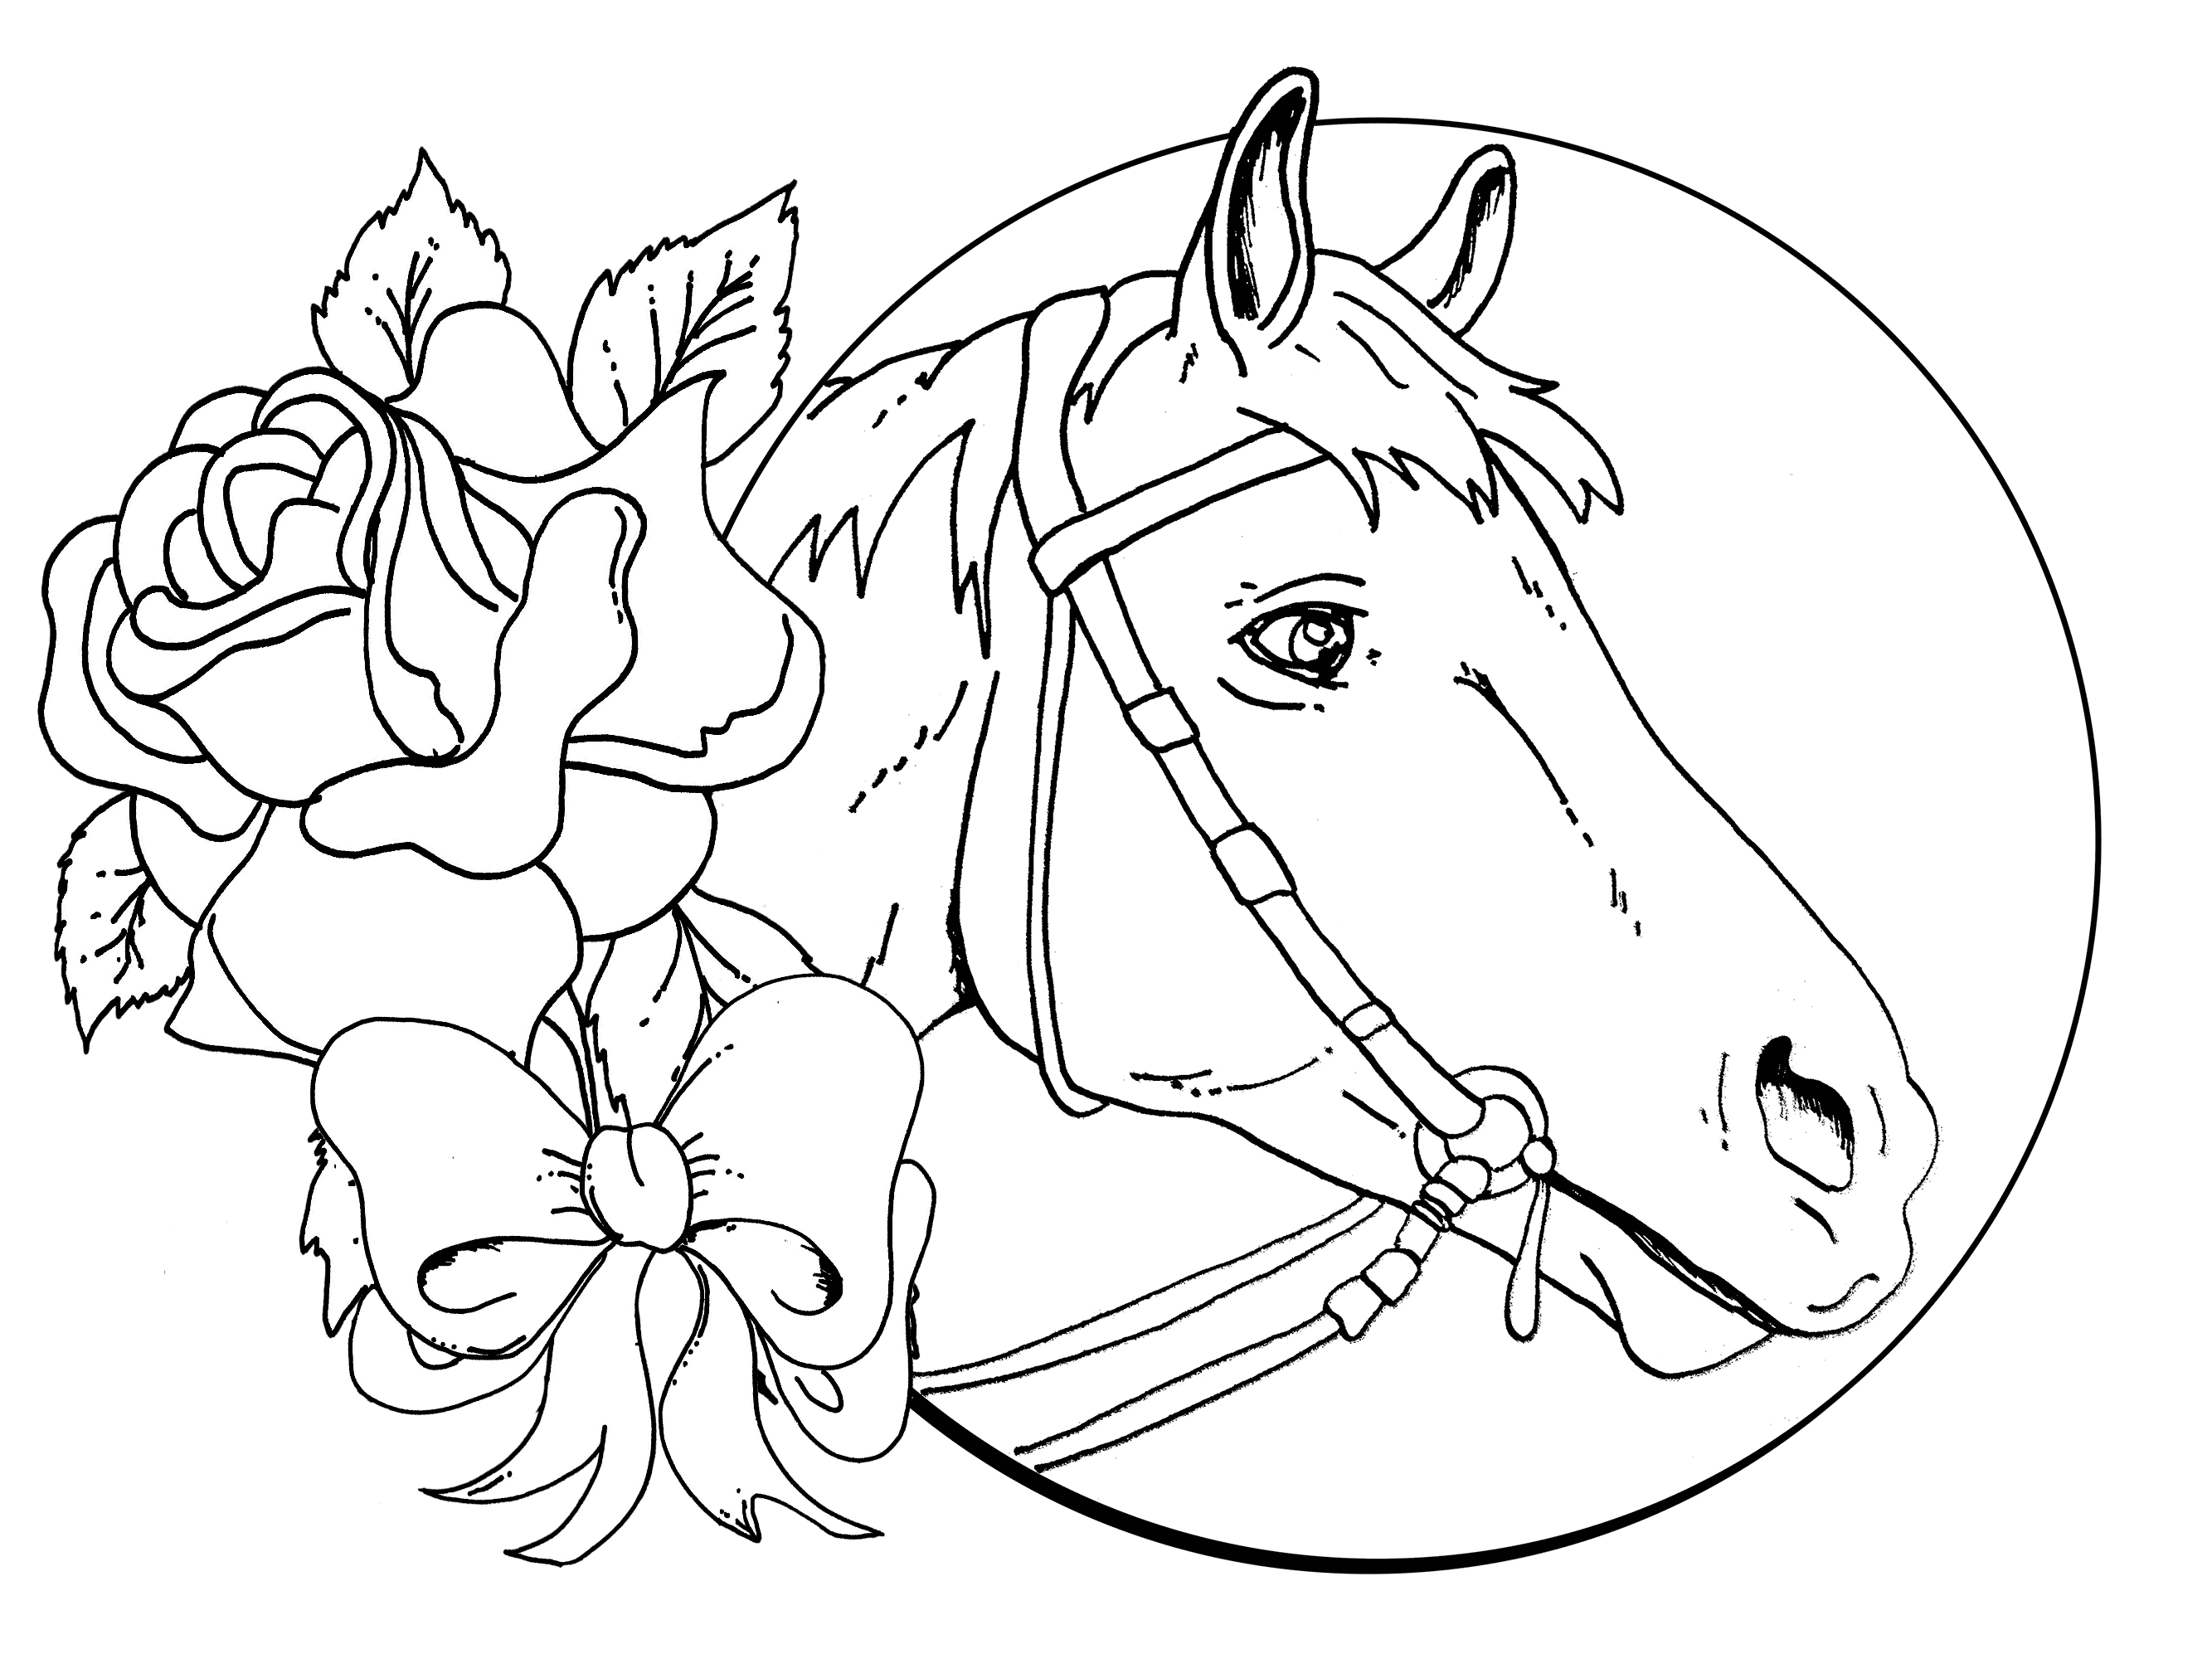 Endorsed Coloring Sheets Horses Detailed Christmas Pages Download Gallery Of Sturdy Coloring Page A Horse Pages Horses R 3353 Unknown Download